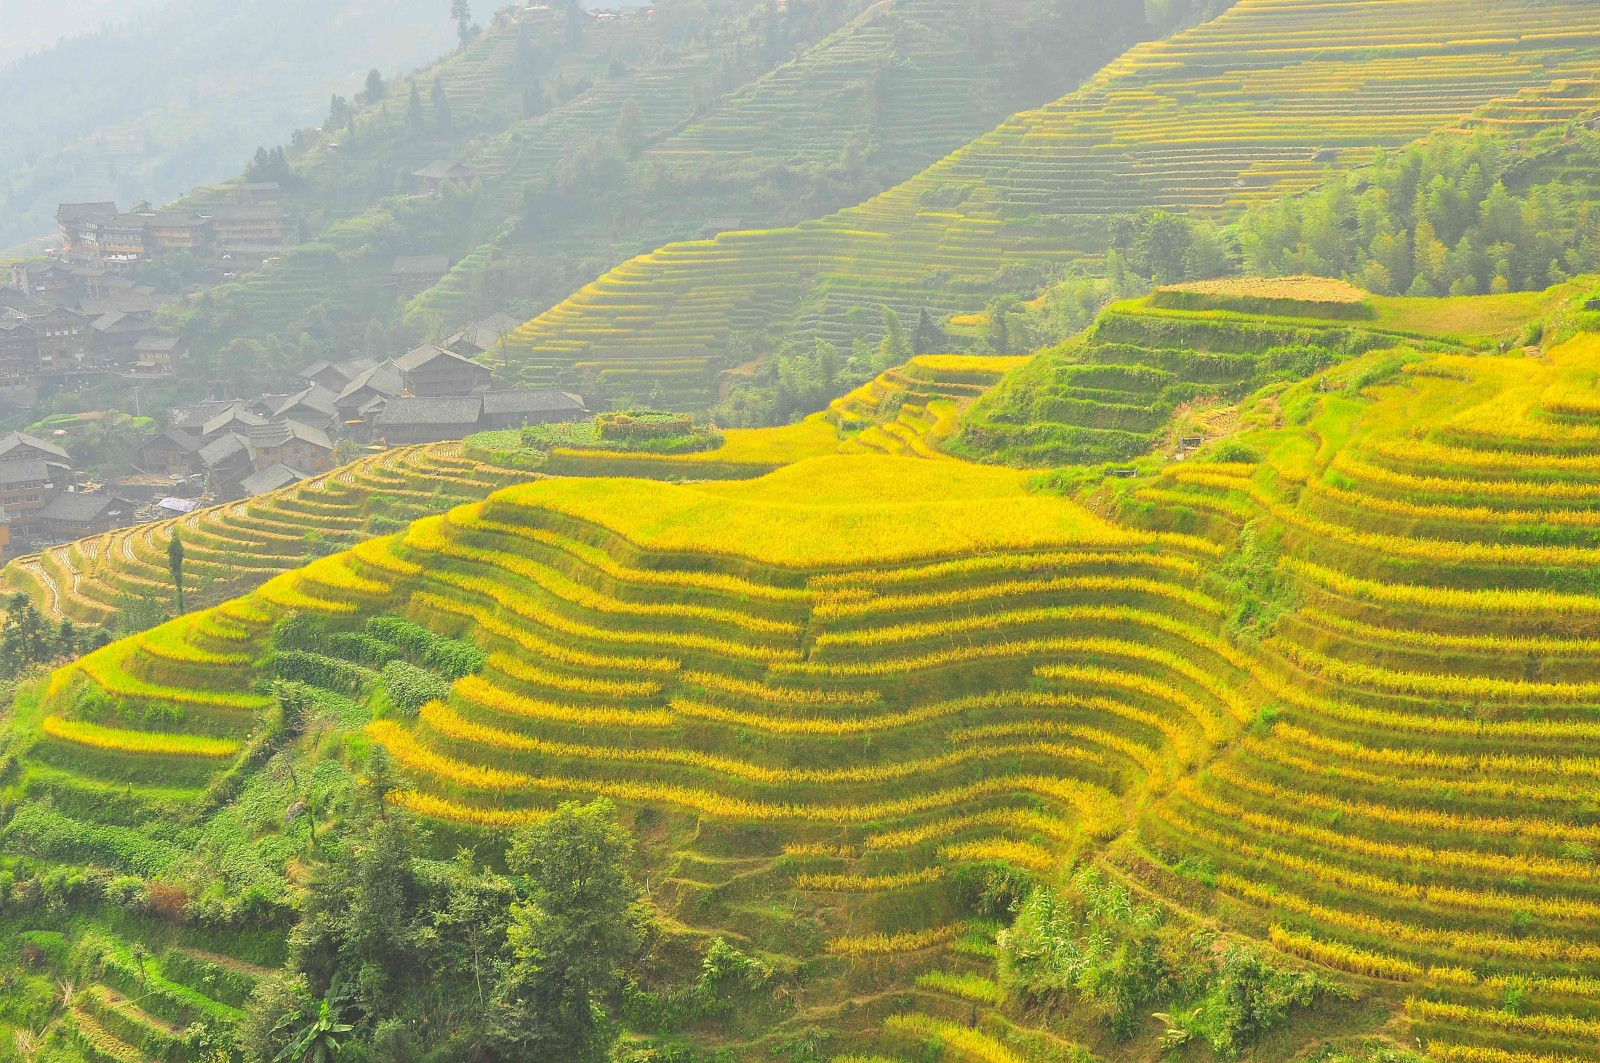 Rice terraces Longsheng, China, Supplier Photo (PureQuest)